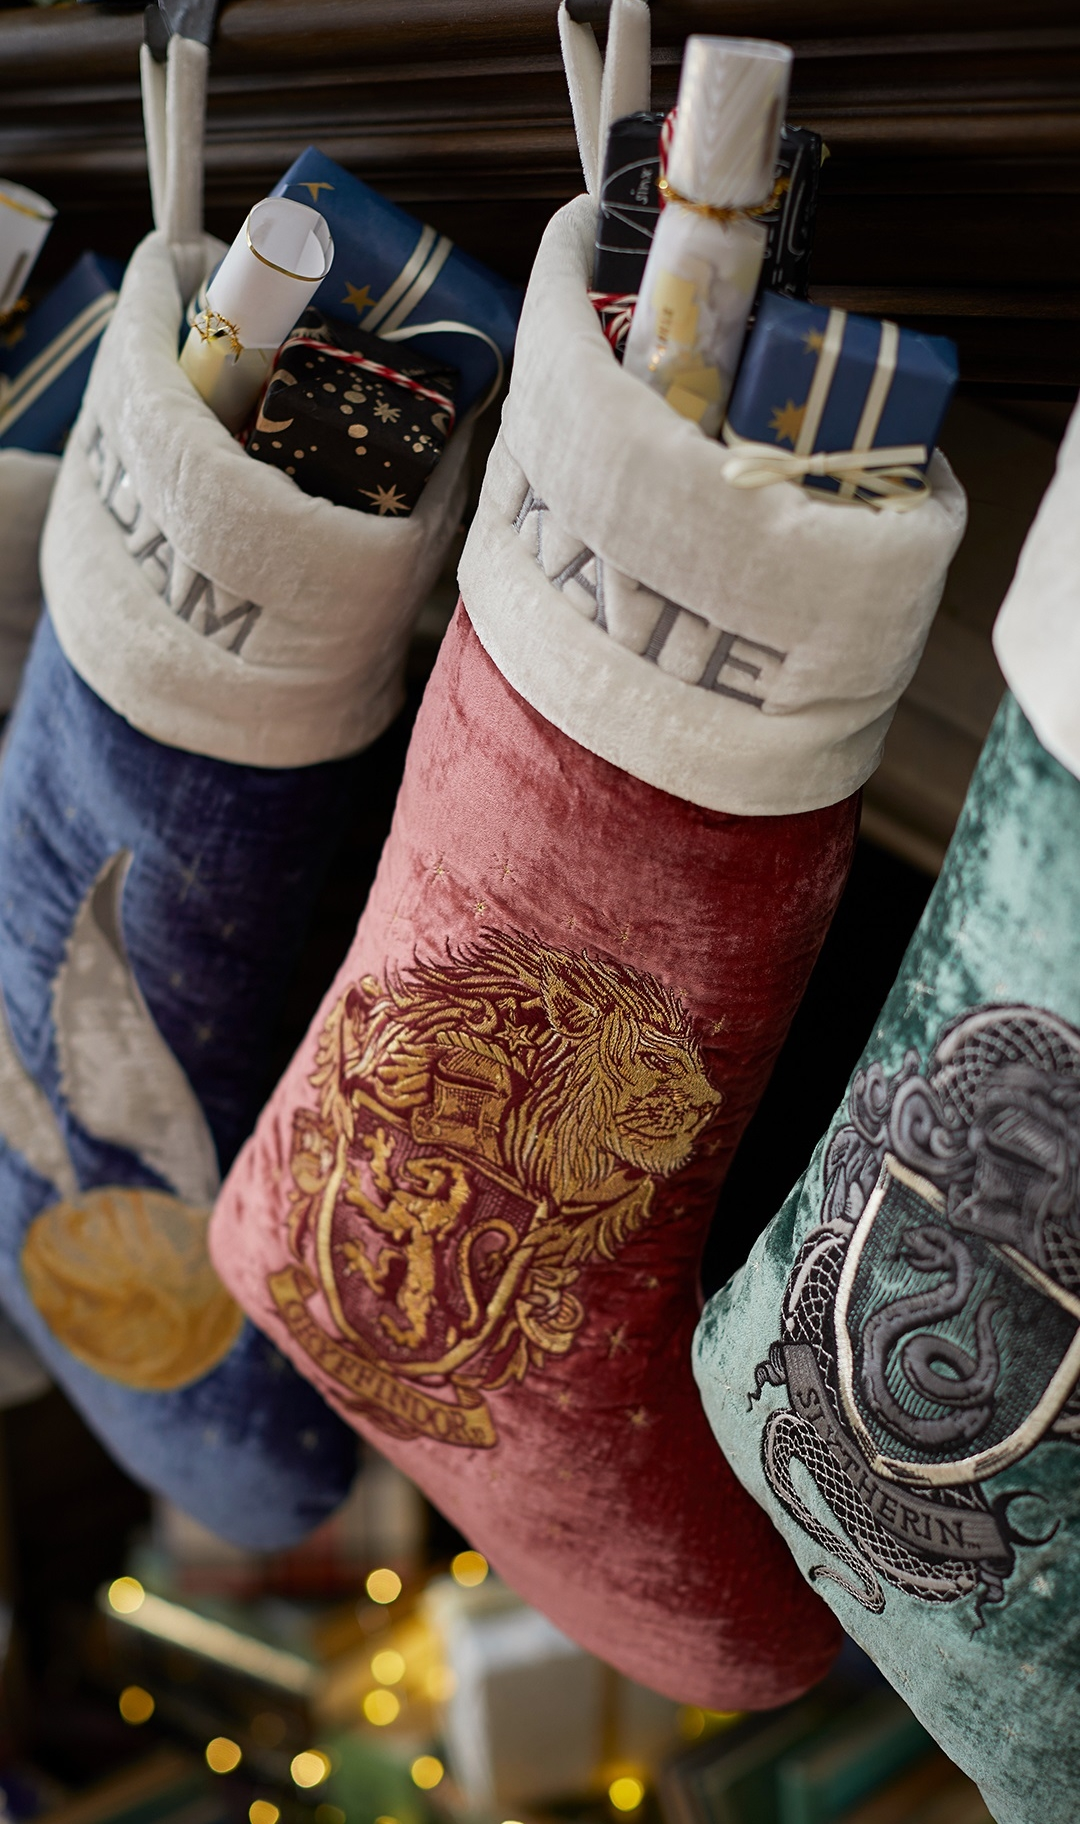 Harry Potter stocking collection, $54 each